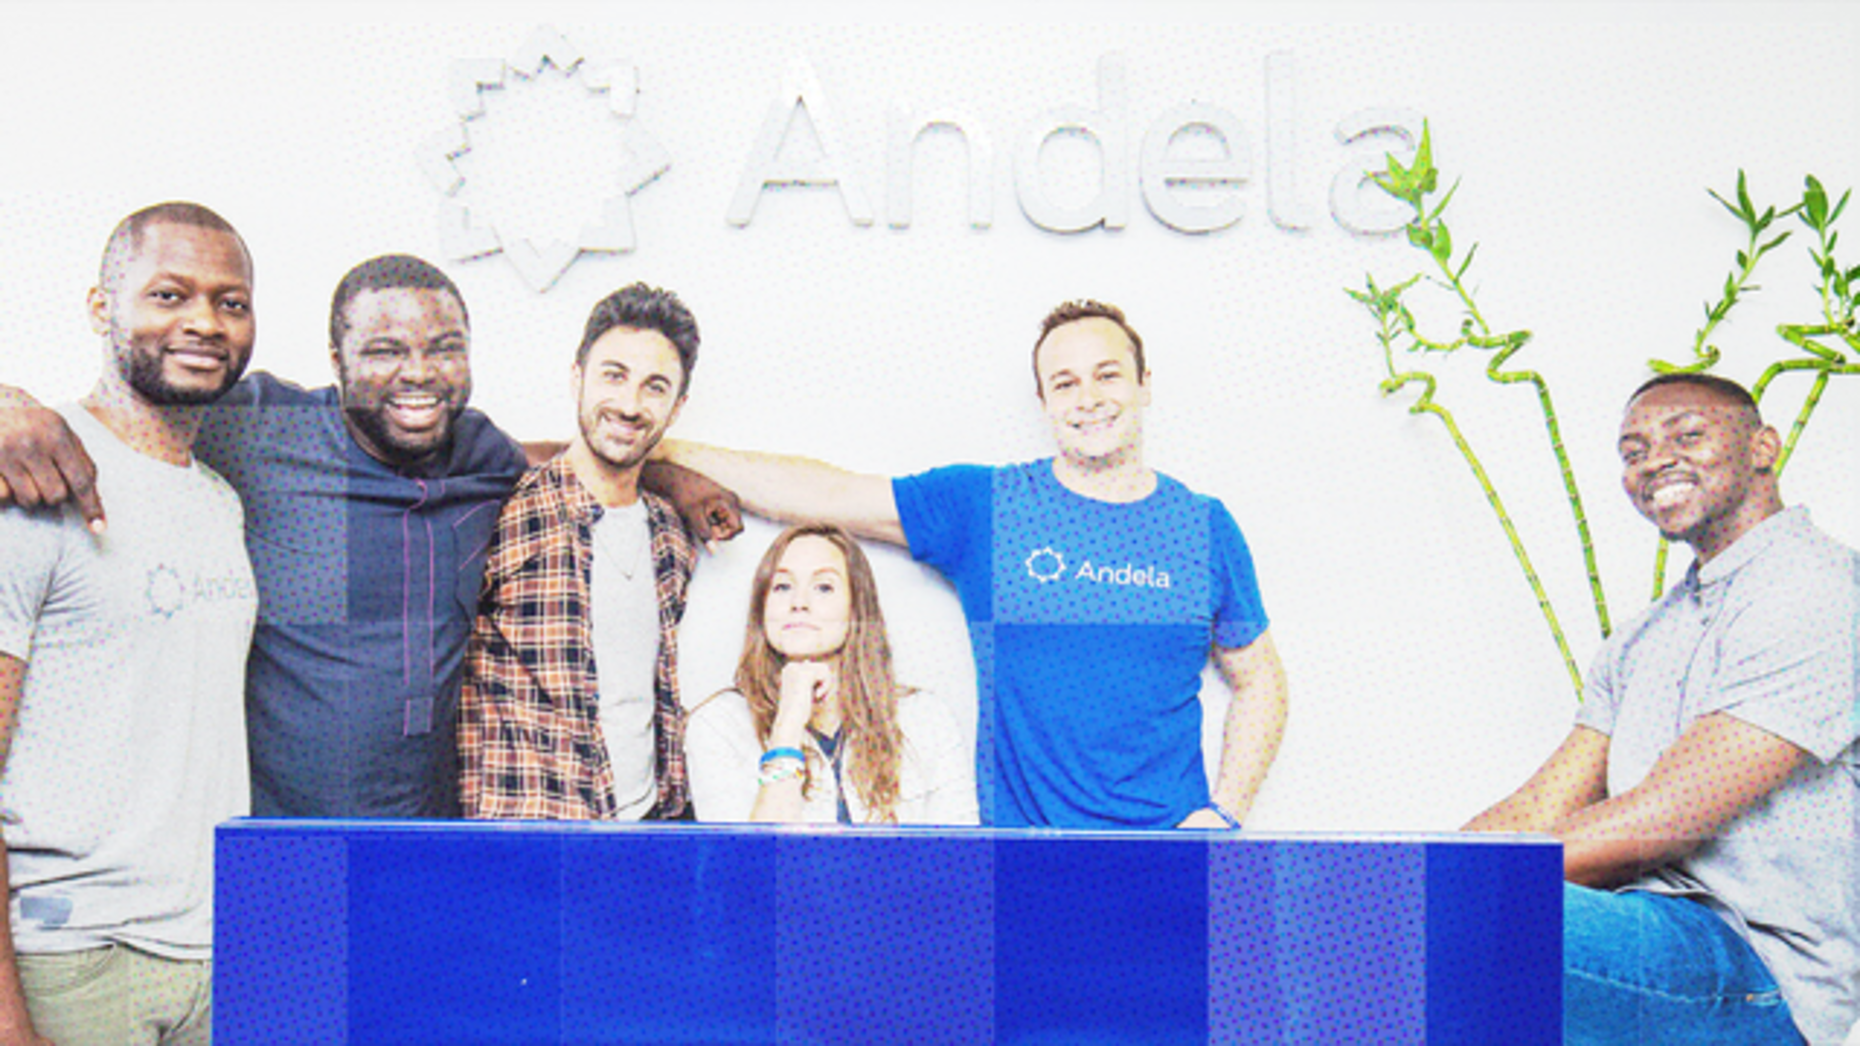 Andela co-founders, l.-r., Brice Nkengsa, Iyinoluwa Aboyeji, Ian Carnevale, Christina Sass, Jeremy Johnson, Nadayar Enegesi. Photo: Andela